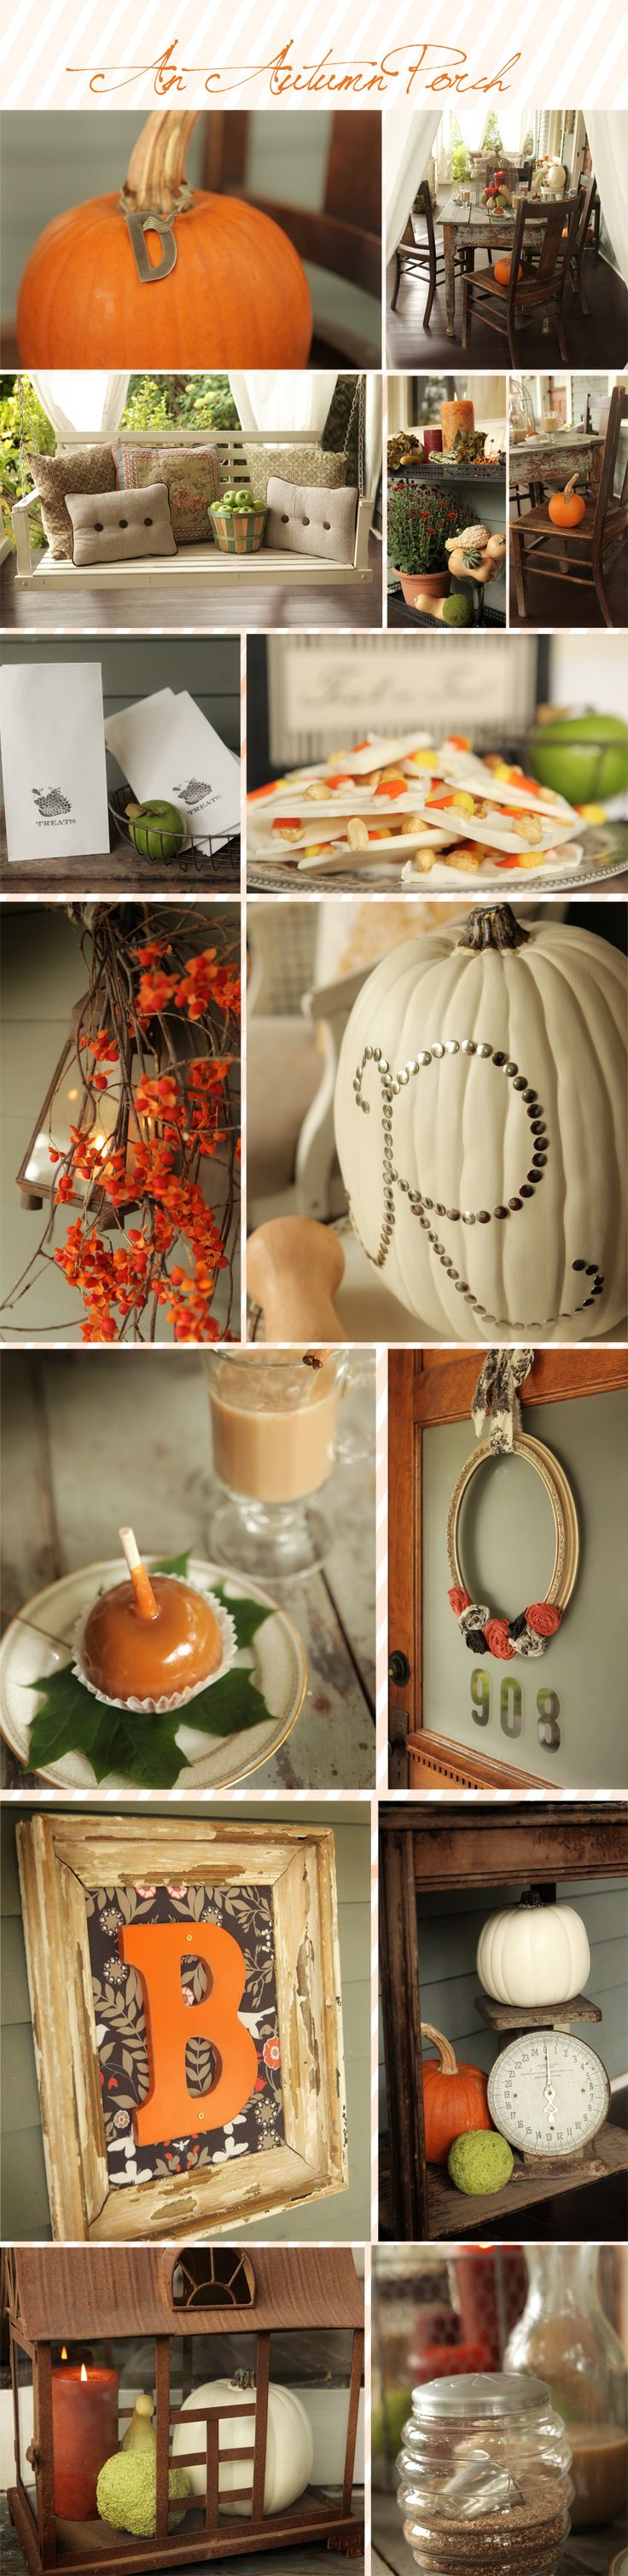 Some great Fall decor ideas!